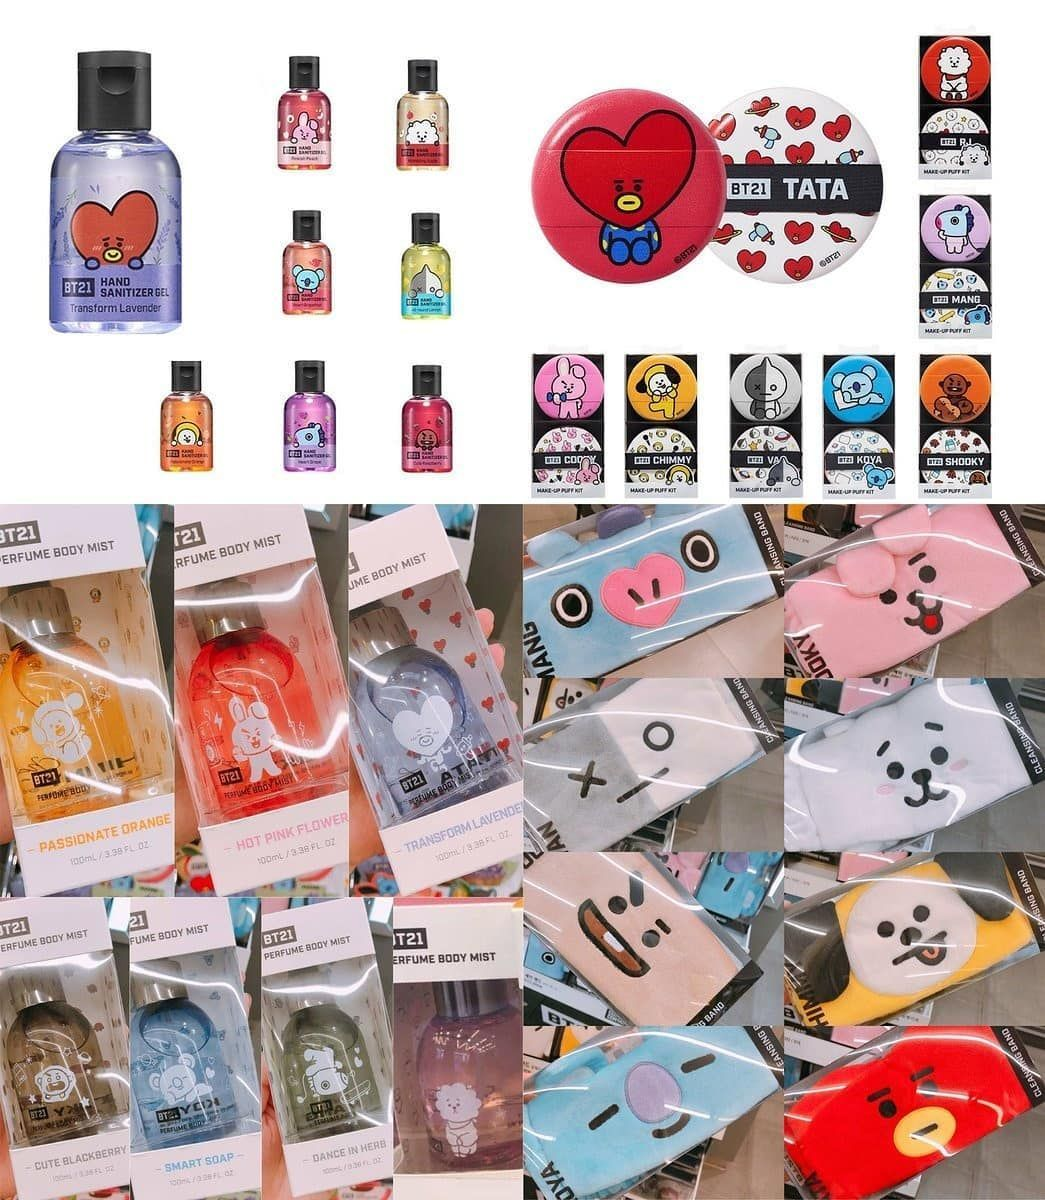 Pre Order Bt21xoliveyoung Hand Sanitizer Gel Idr 175 000